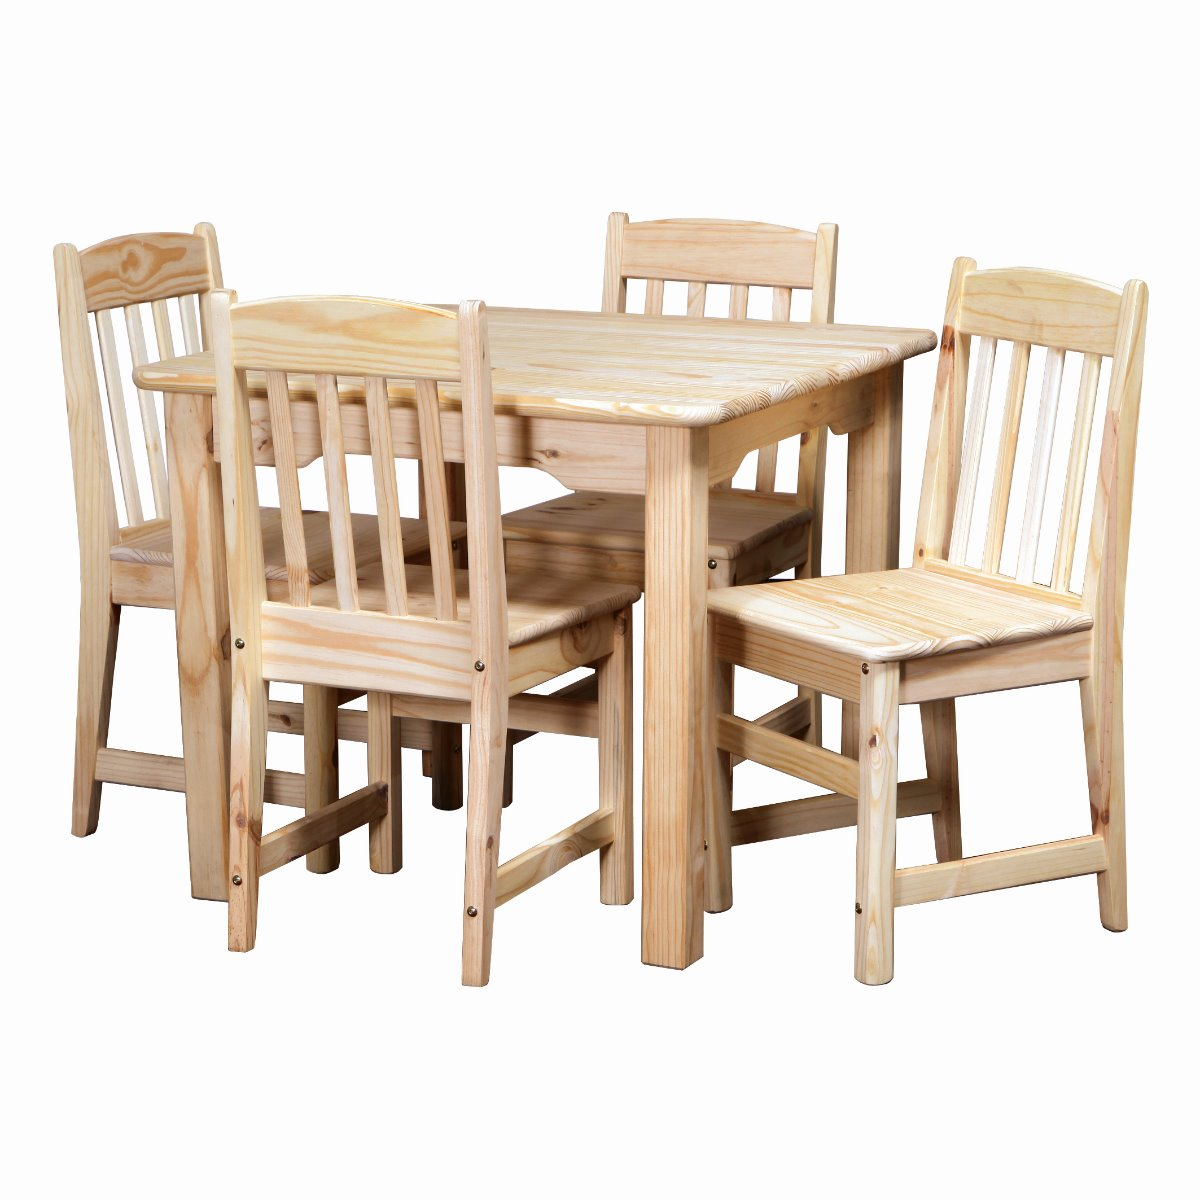 Our Dining Room Suites Range, Pine Dining Room Table And Chairs